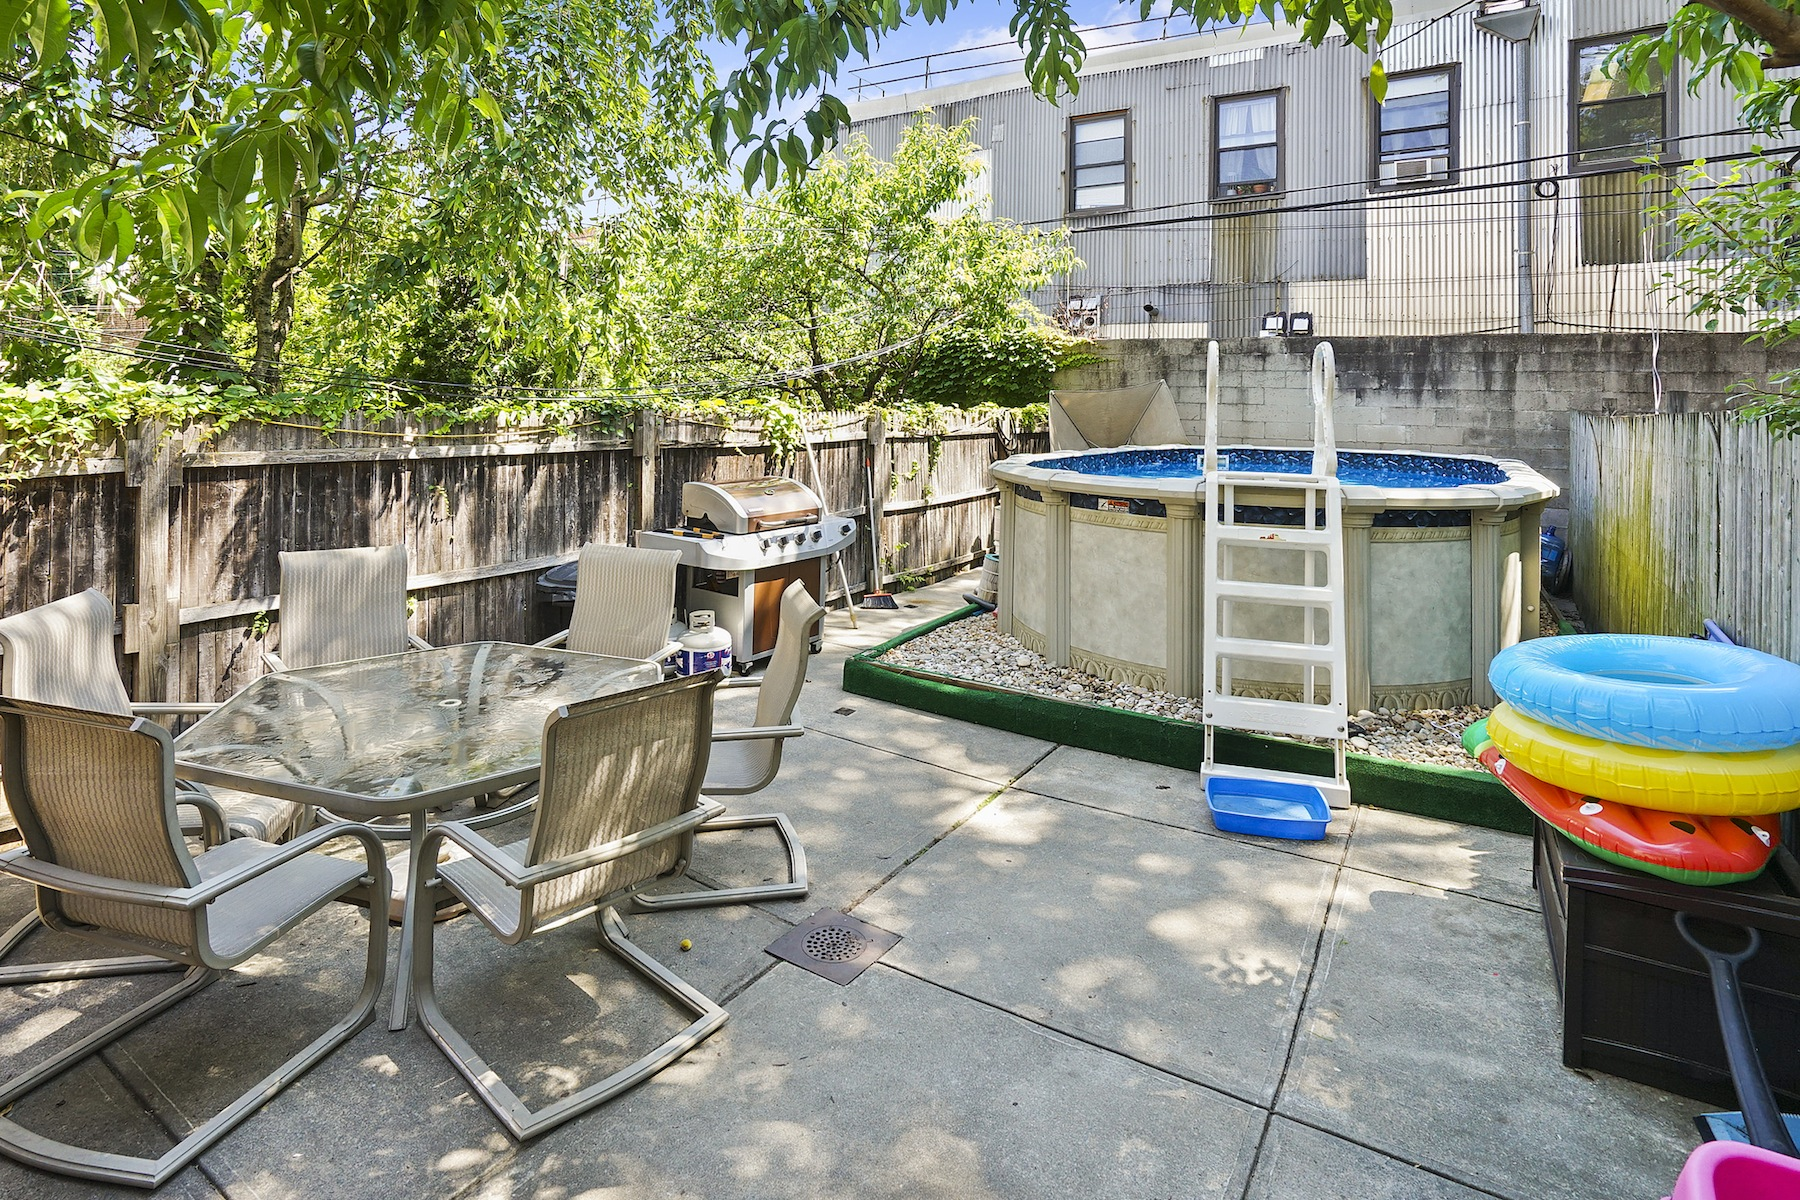 Additional photo for property listing at 66 Jewel 66 Jewel Street Brooklyn, New York 11222 United States